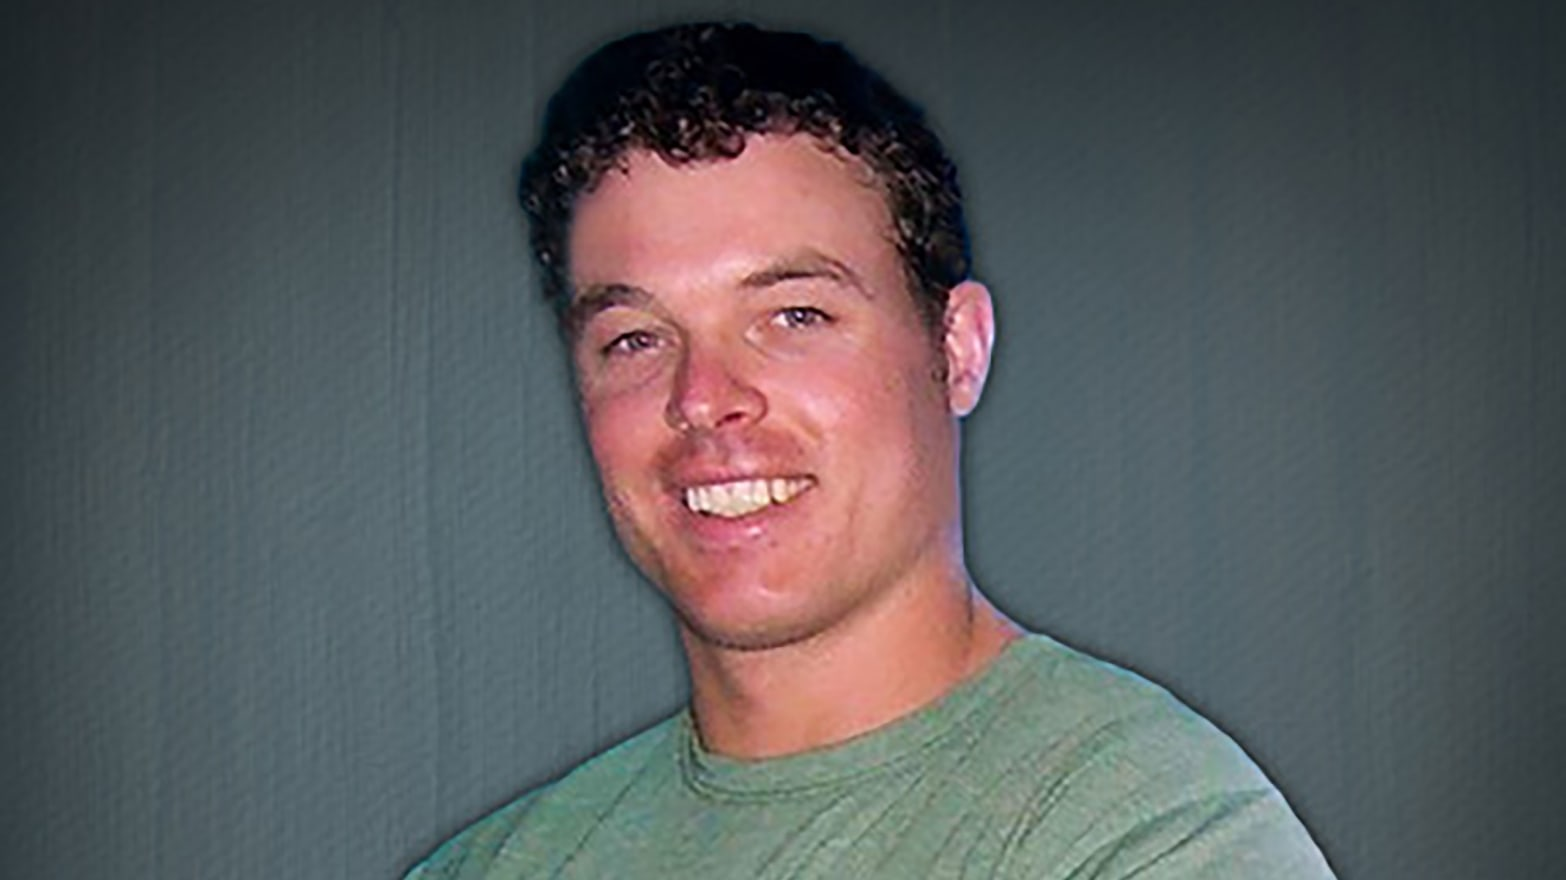 SEAL Team 6 Member Kyle Milliken, 38, Named as Navy SEAL Killed in